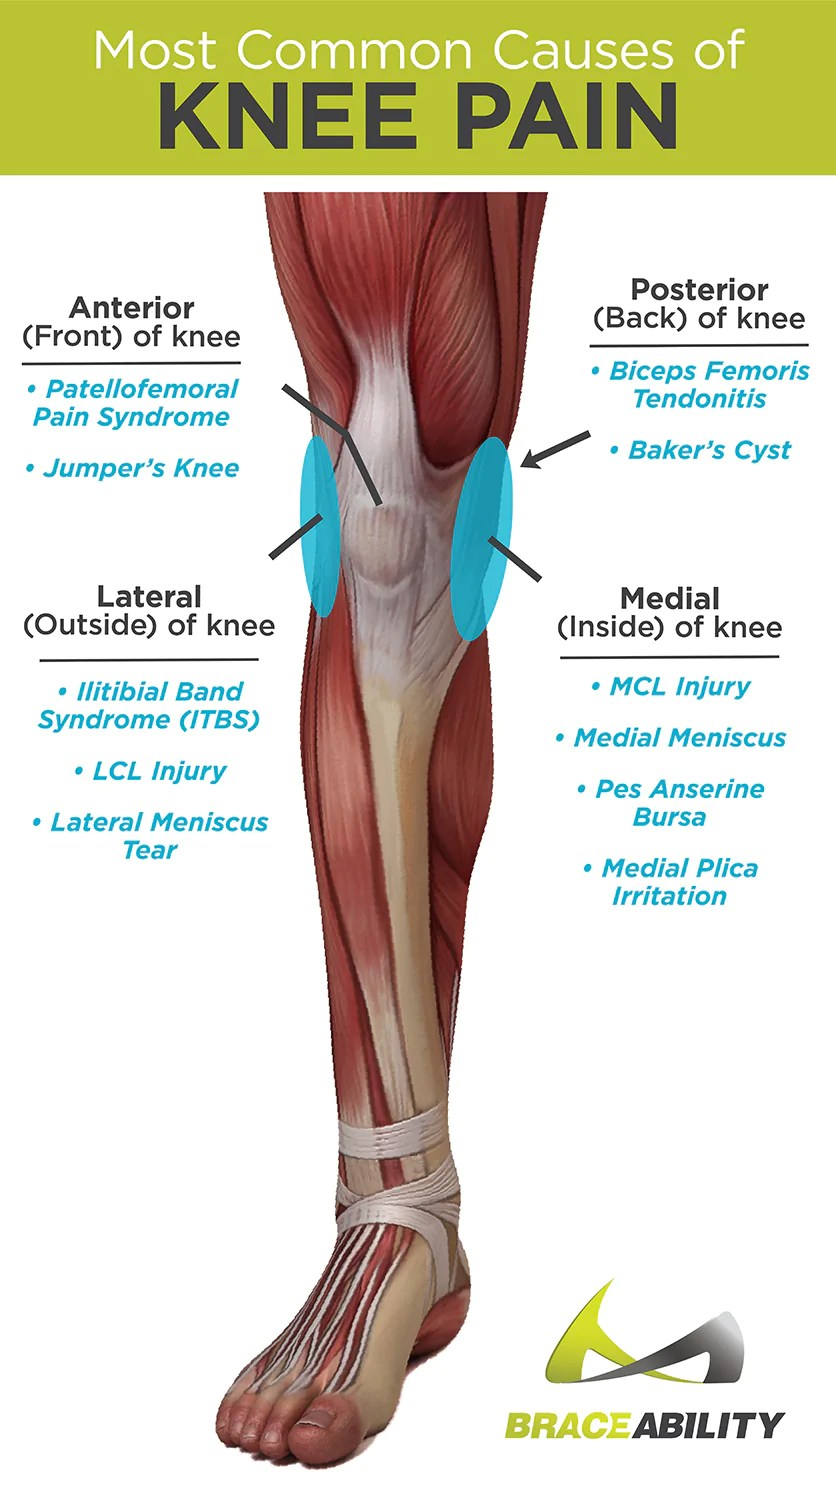 hight resolution of types of knee pain and what causes anterior posterior medial and lateral knee pain